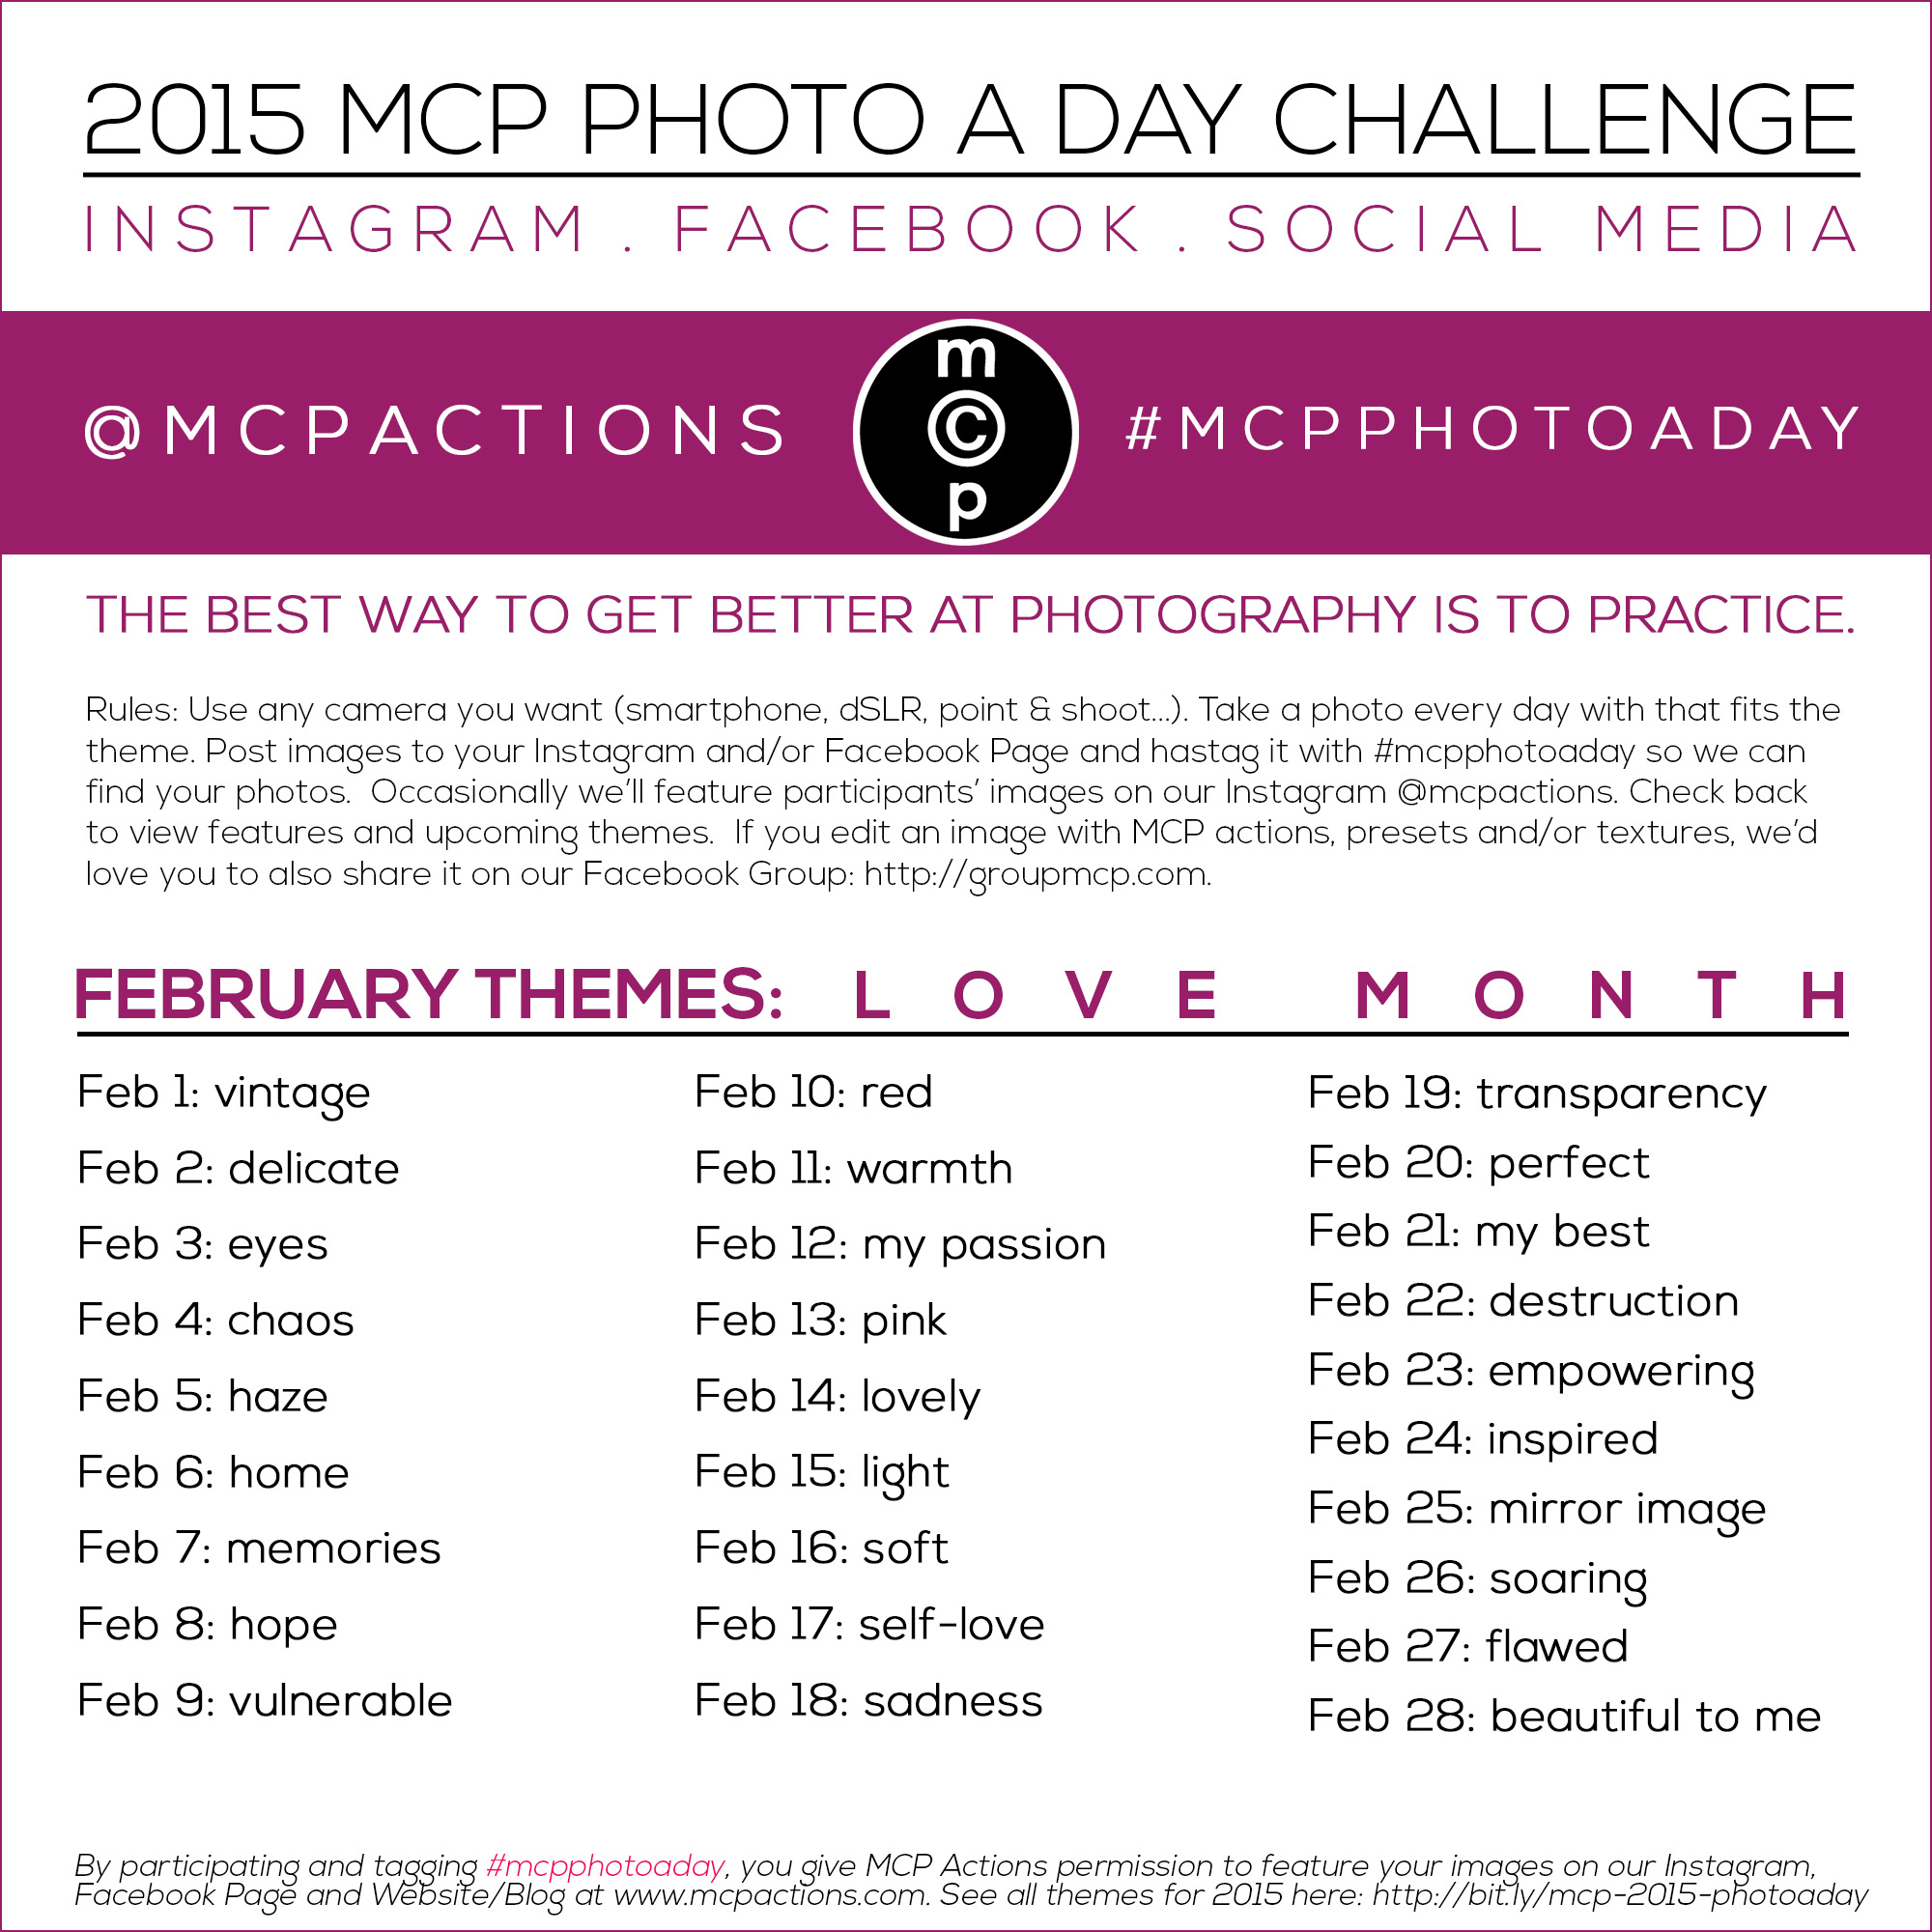 mcpphotoaday-February MCP Photo A Day Challenge: February 2015 Themes Activities Announcements Assignments